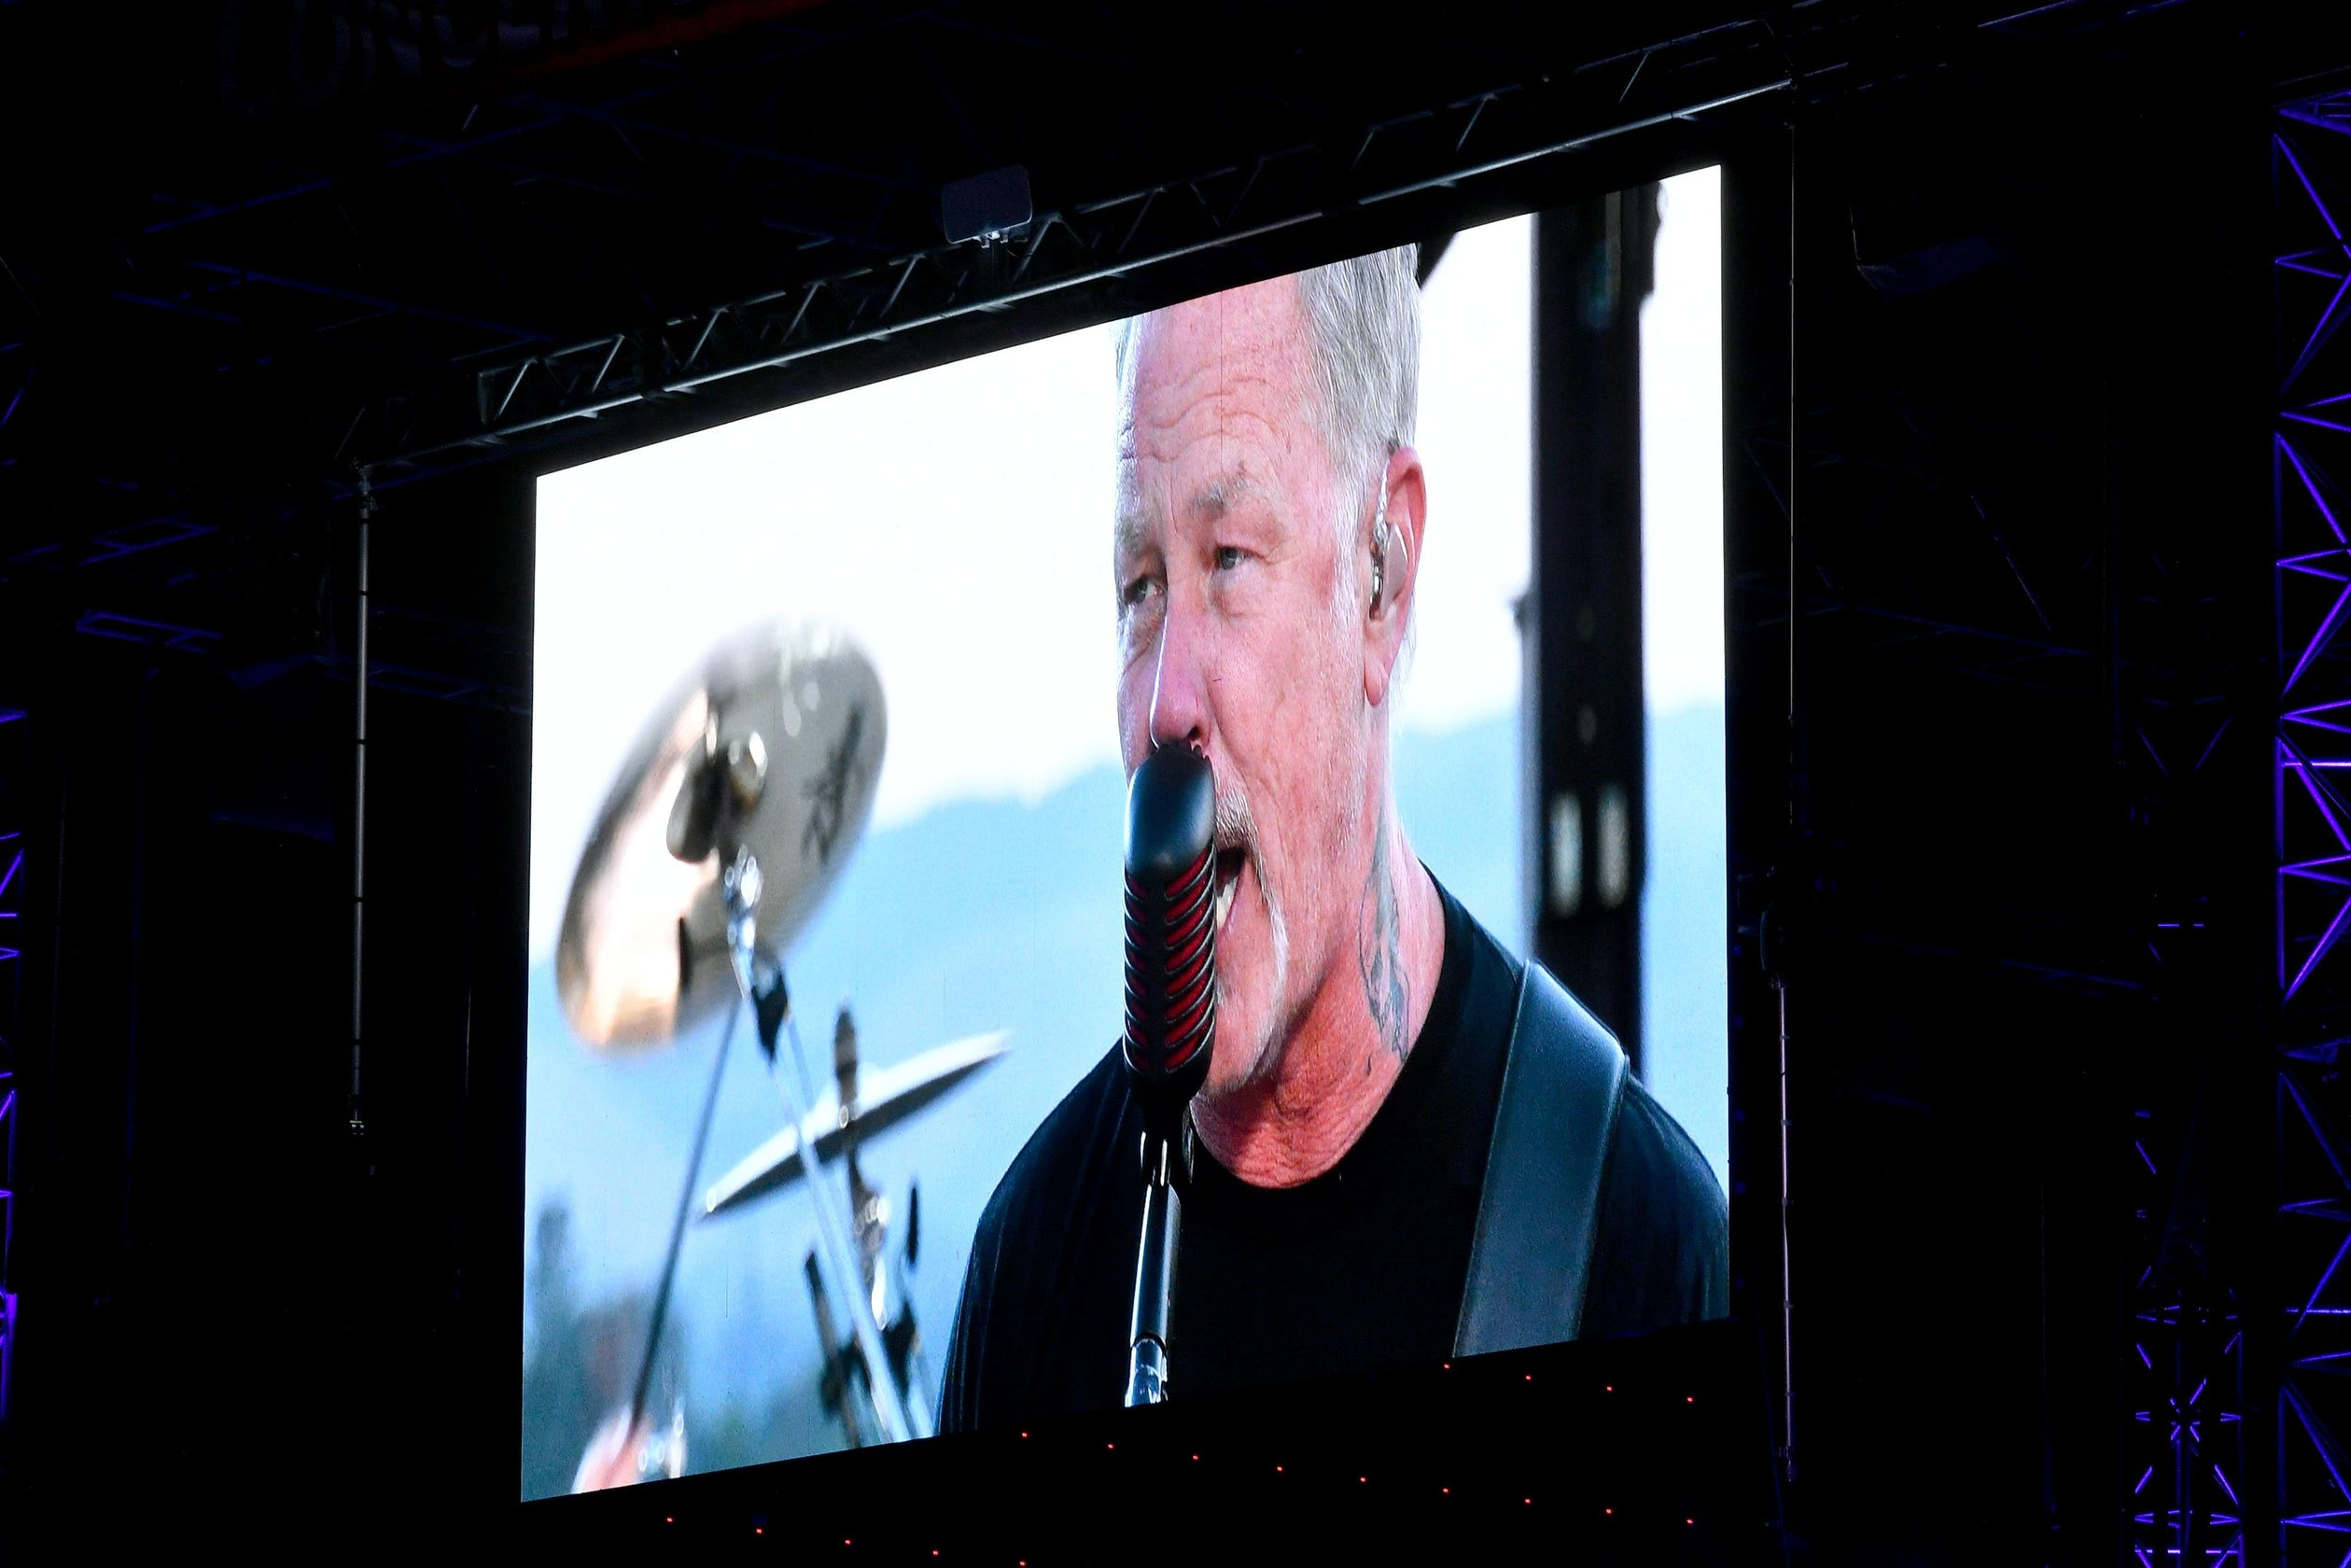 'Music helps us through all things': Metallica rocks virtual concert at drive-in theaters thumbnail